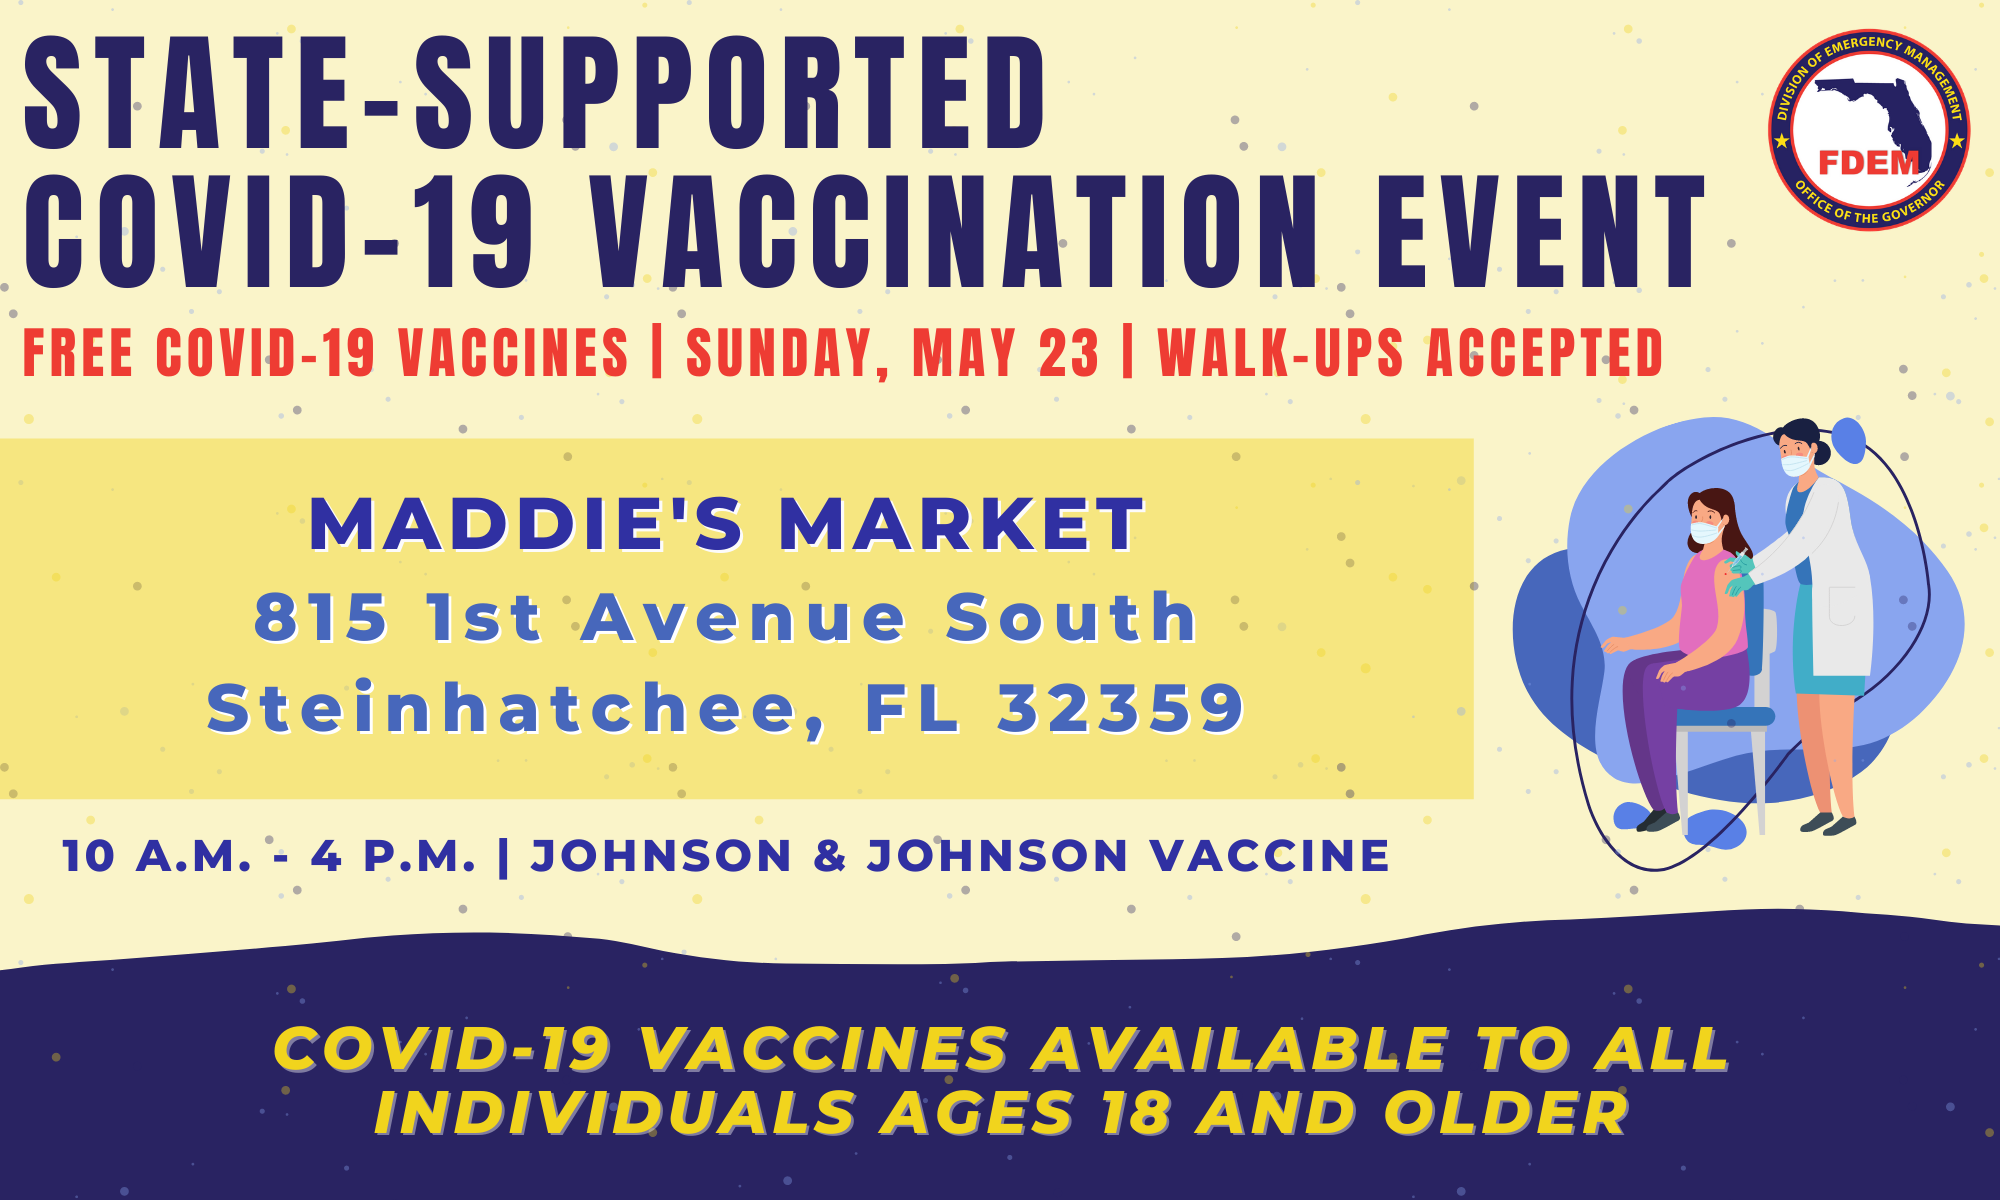 Vaccine Information at Maddie's Market on May 23, 2021